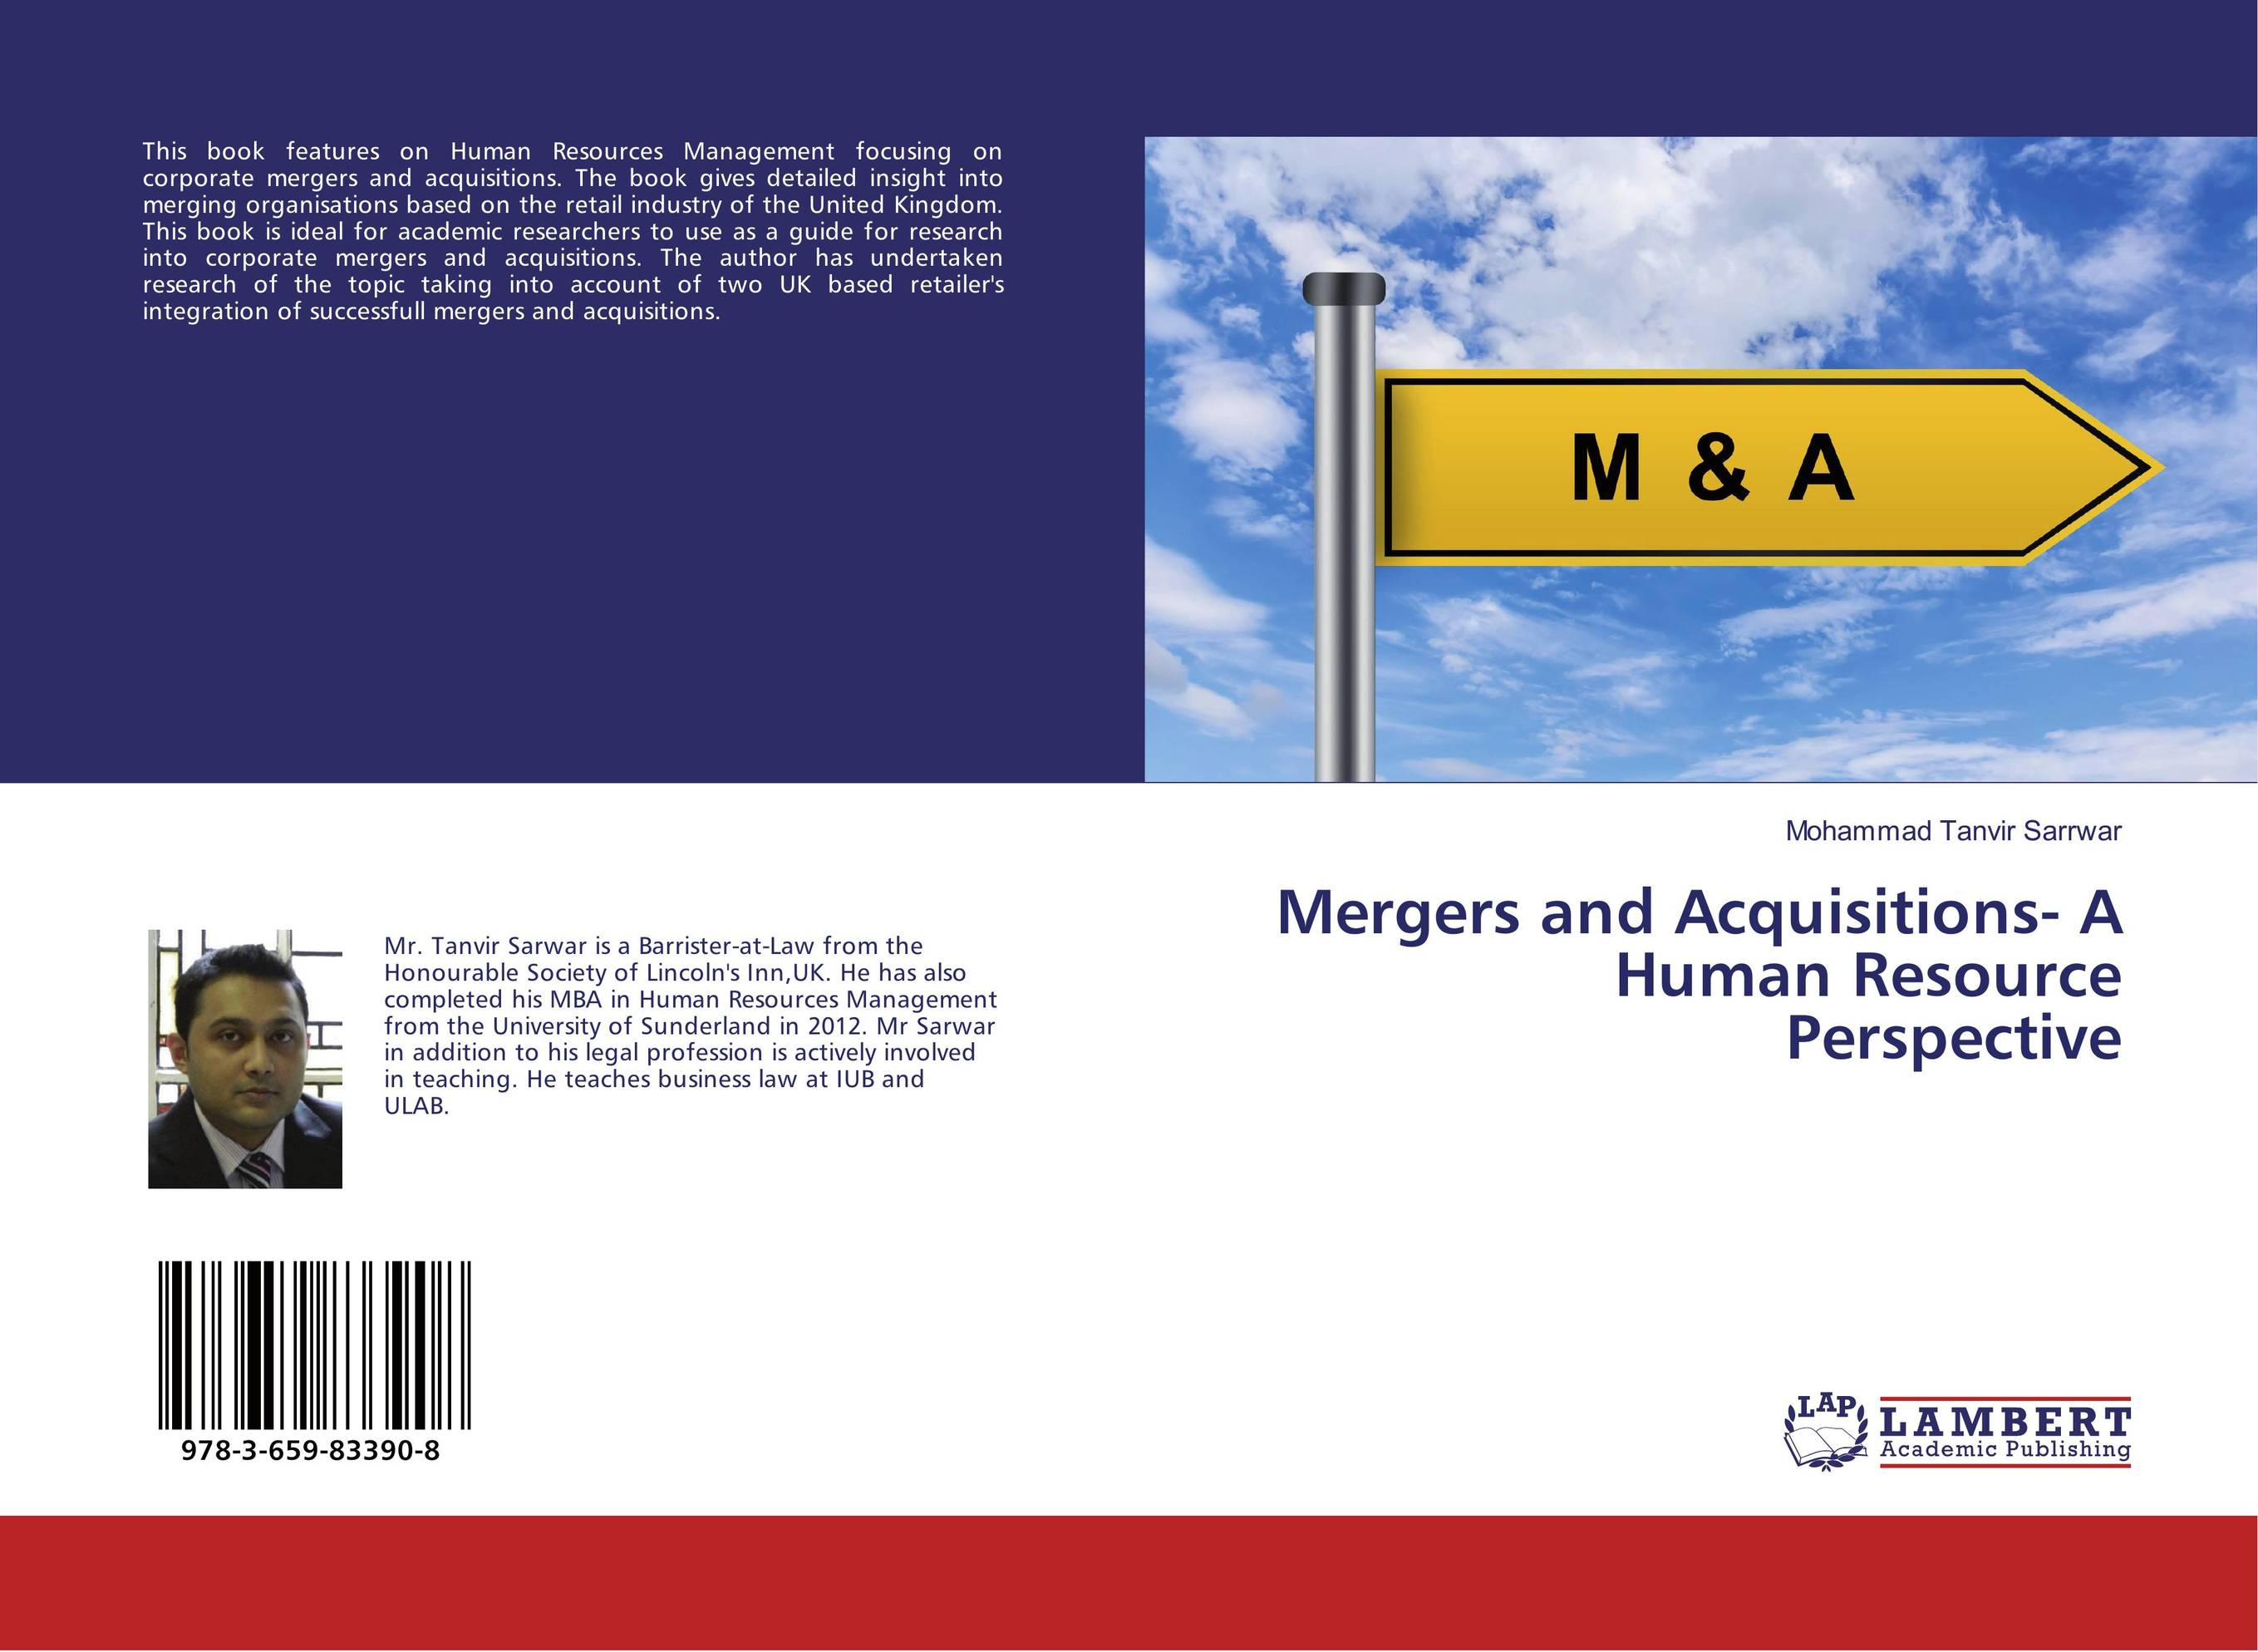 Mergers and Acquisitions- A Human Resource Perspective